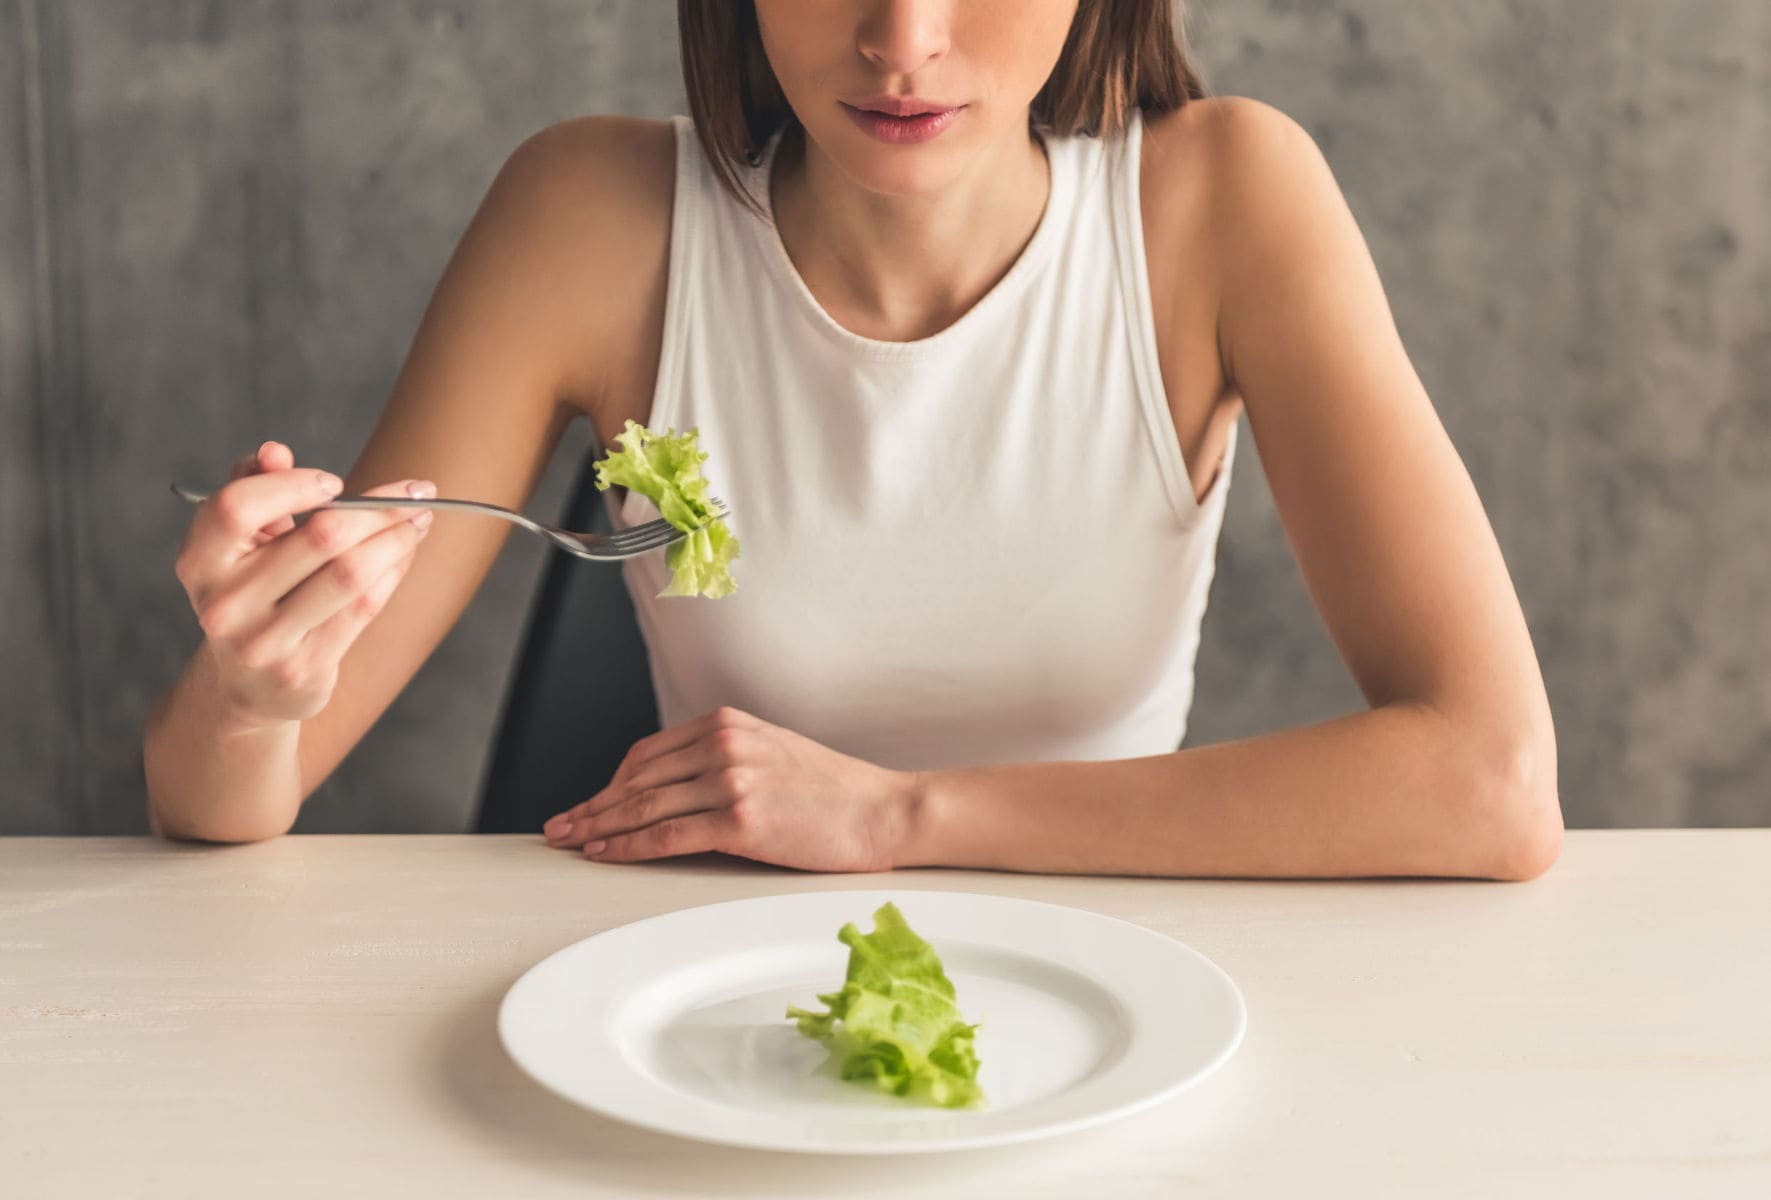 Woman struggling with eating disorder